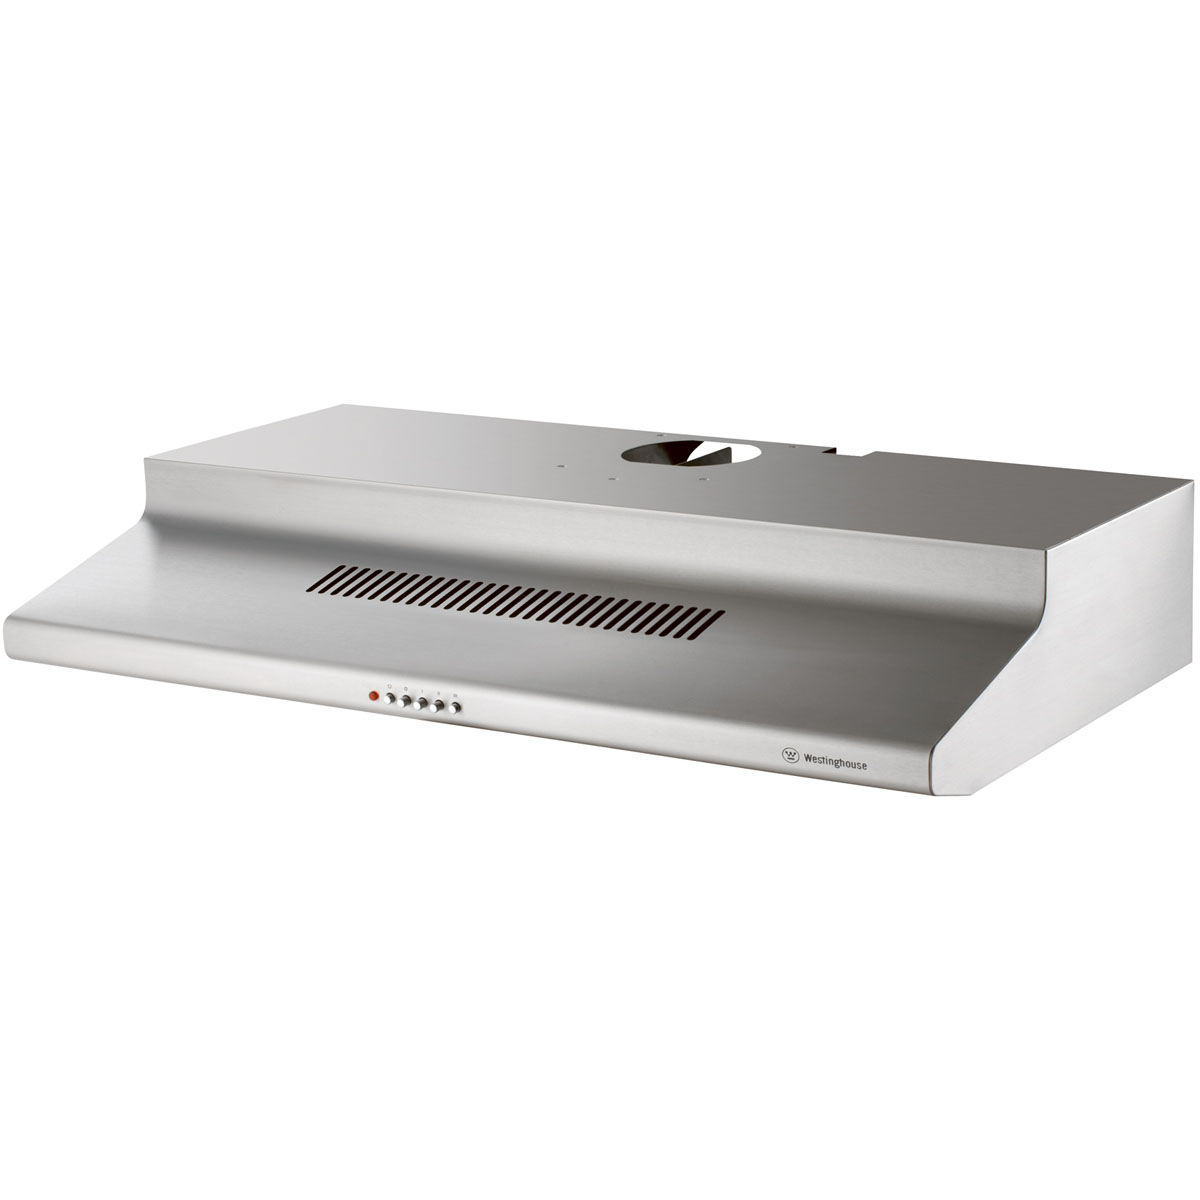 Westinghouse WRJ911USS Fixed Rangehood